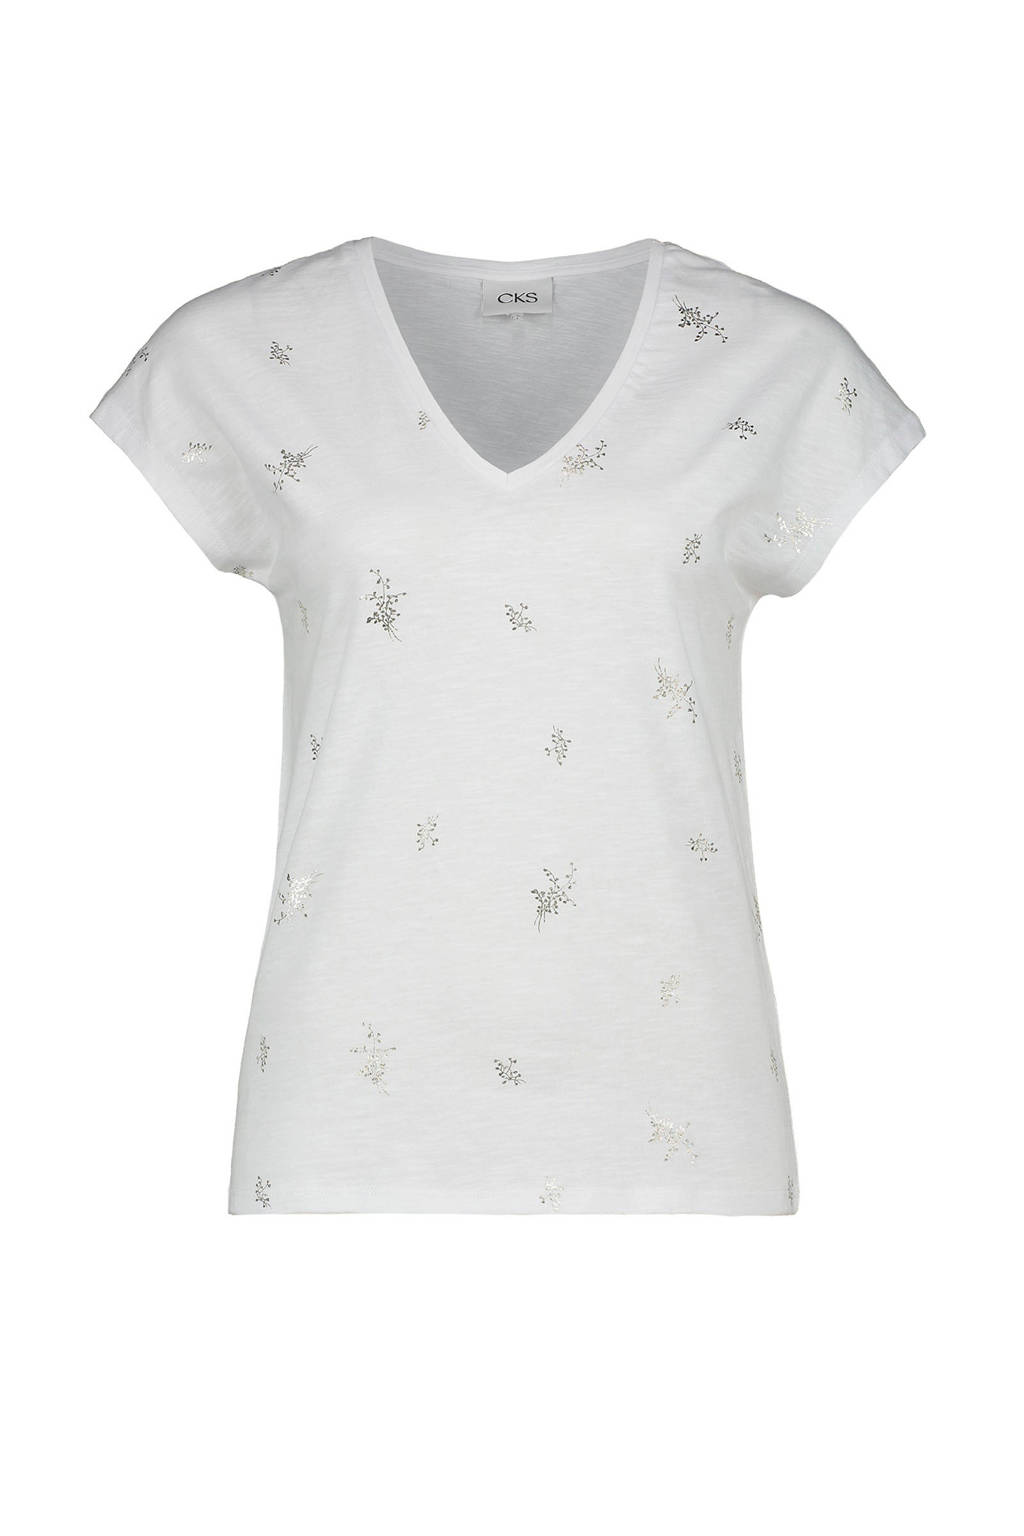 CKS T-shirt met all over print wit, Wit